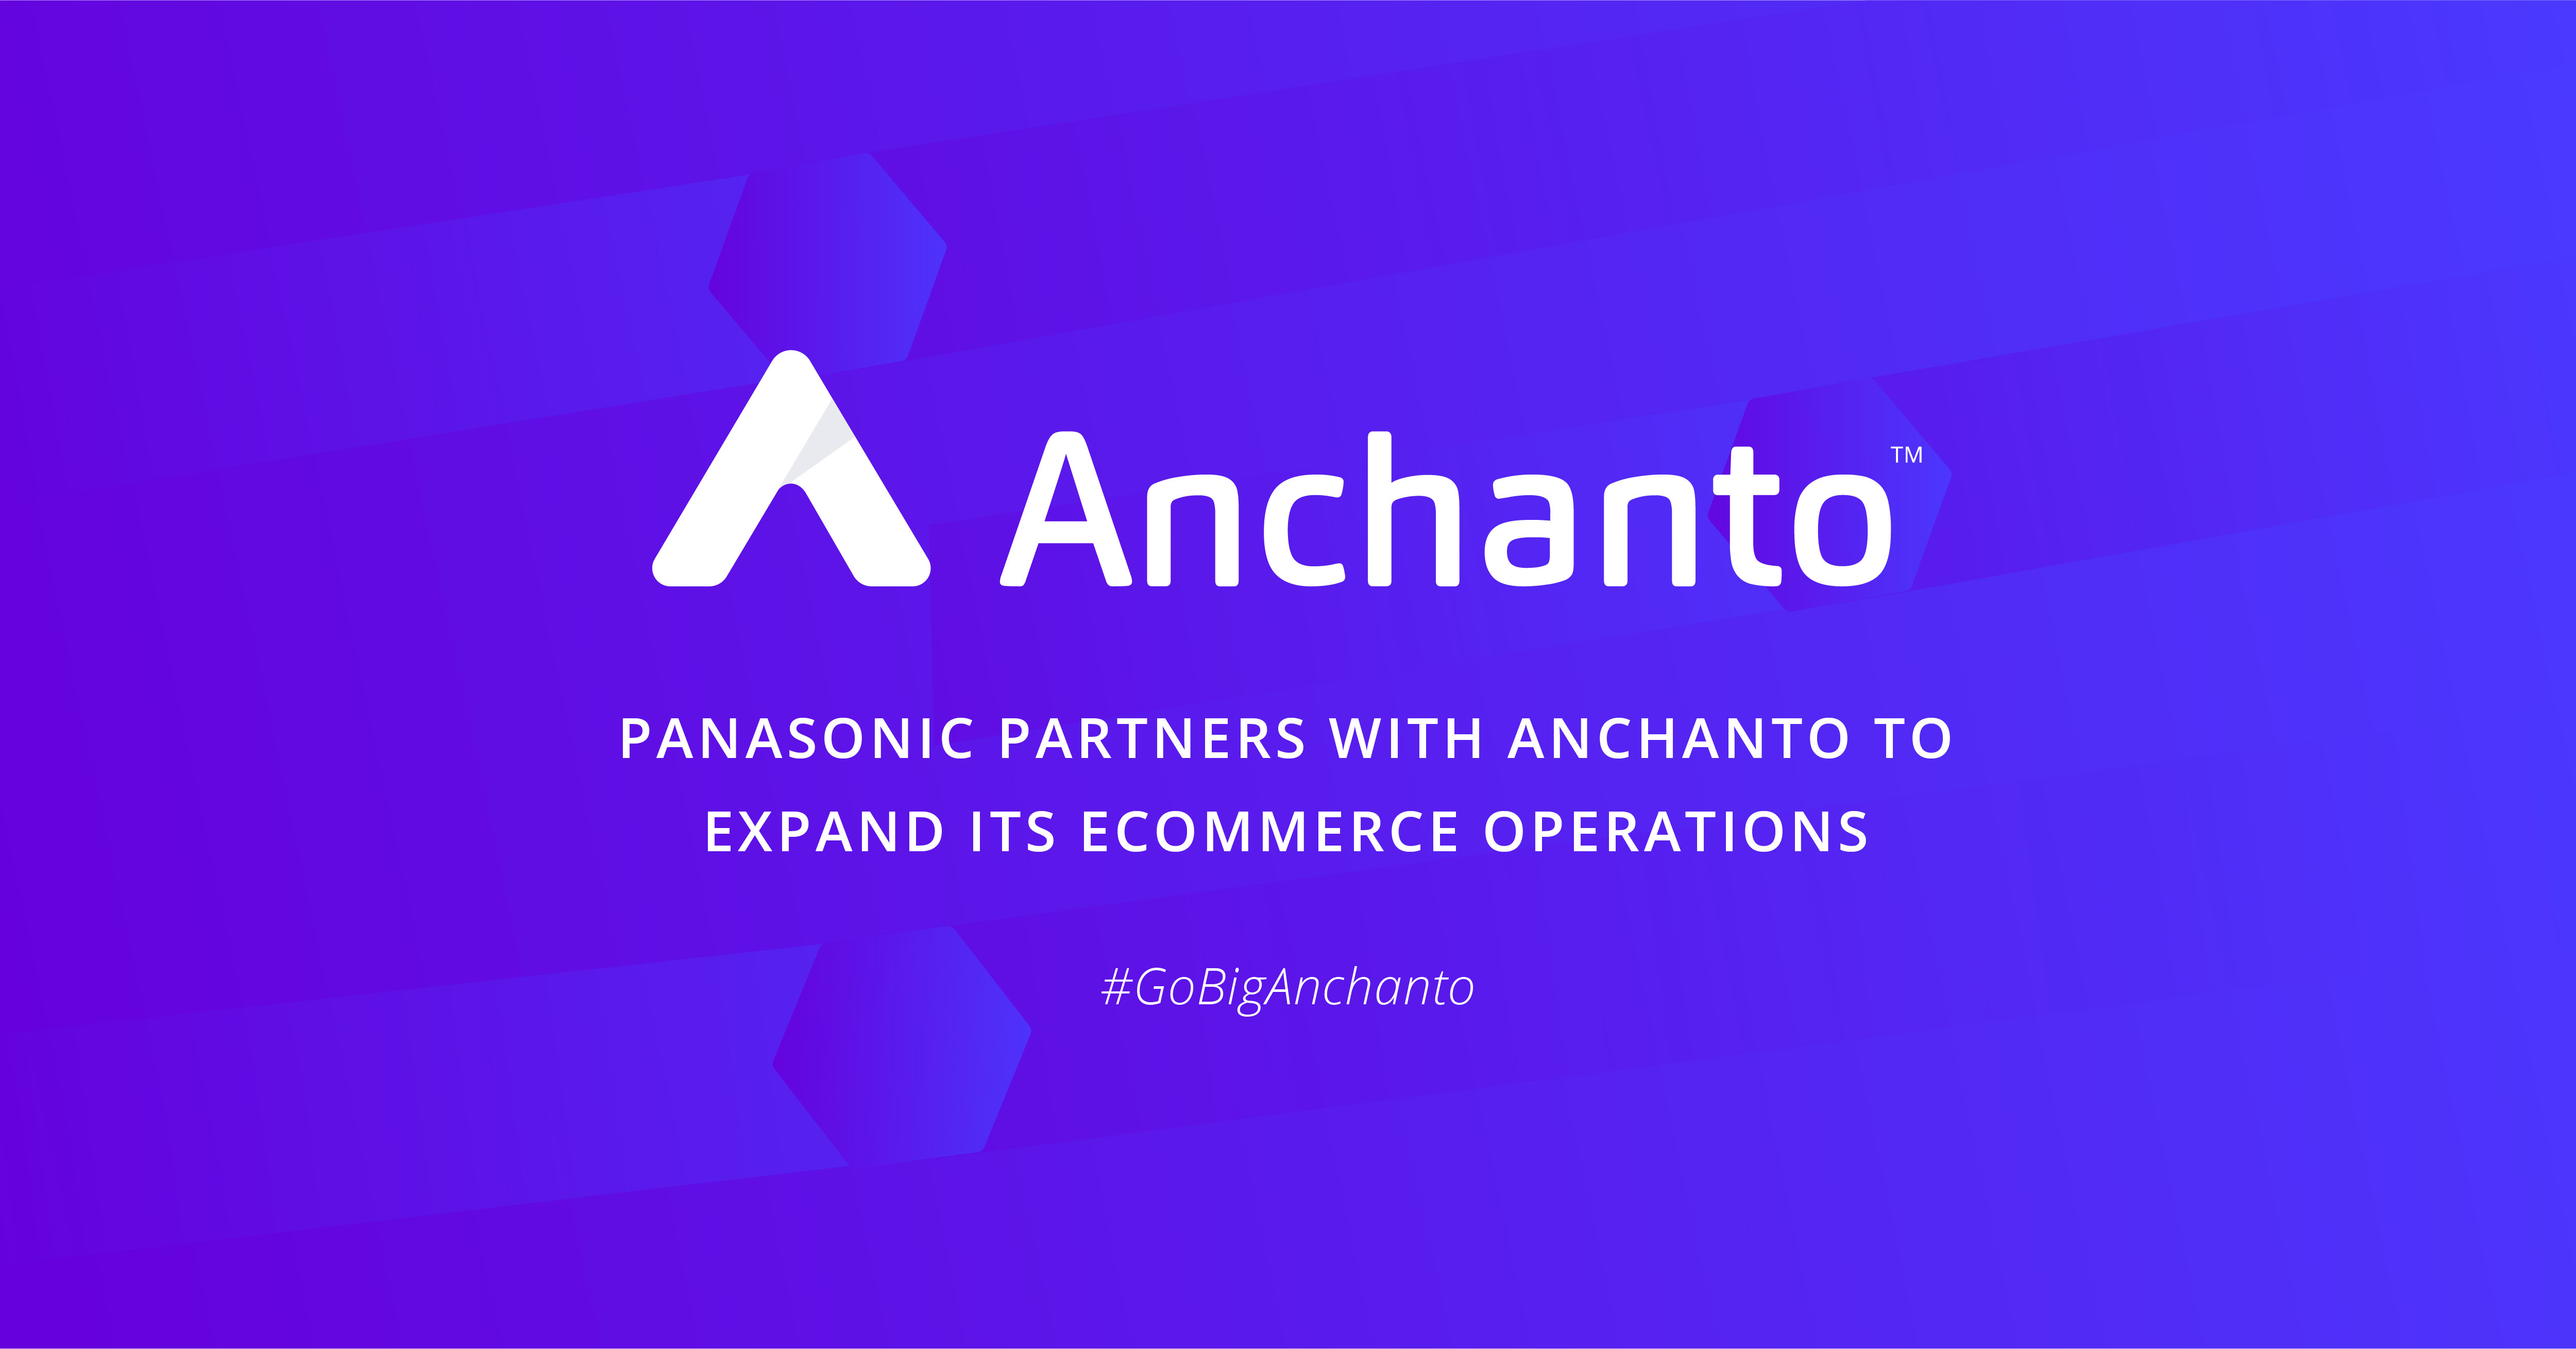 panasonic_partners_with_anchanto_to_expand_its_ecommerce_operations